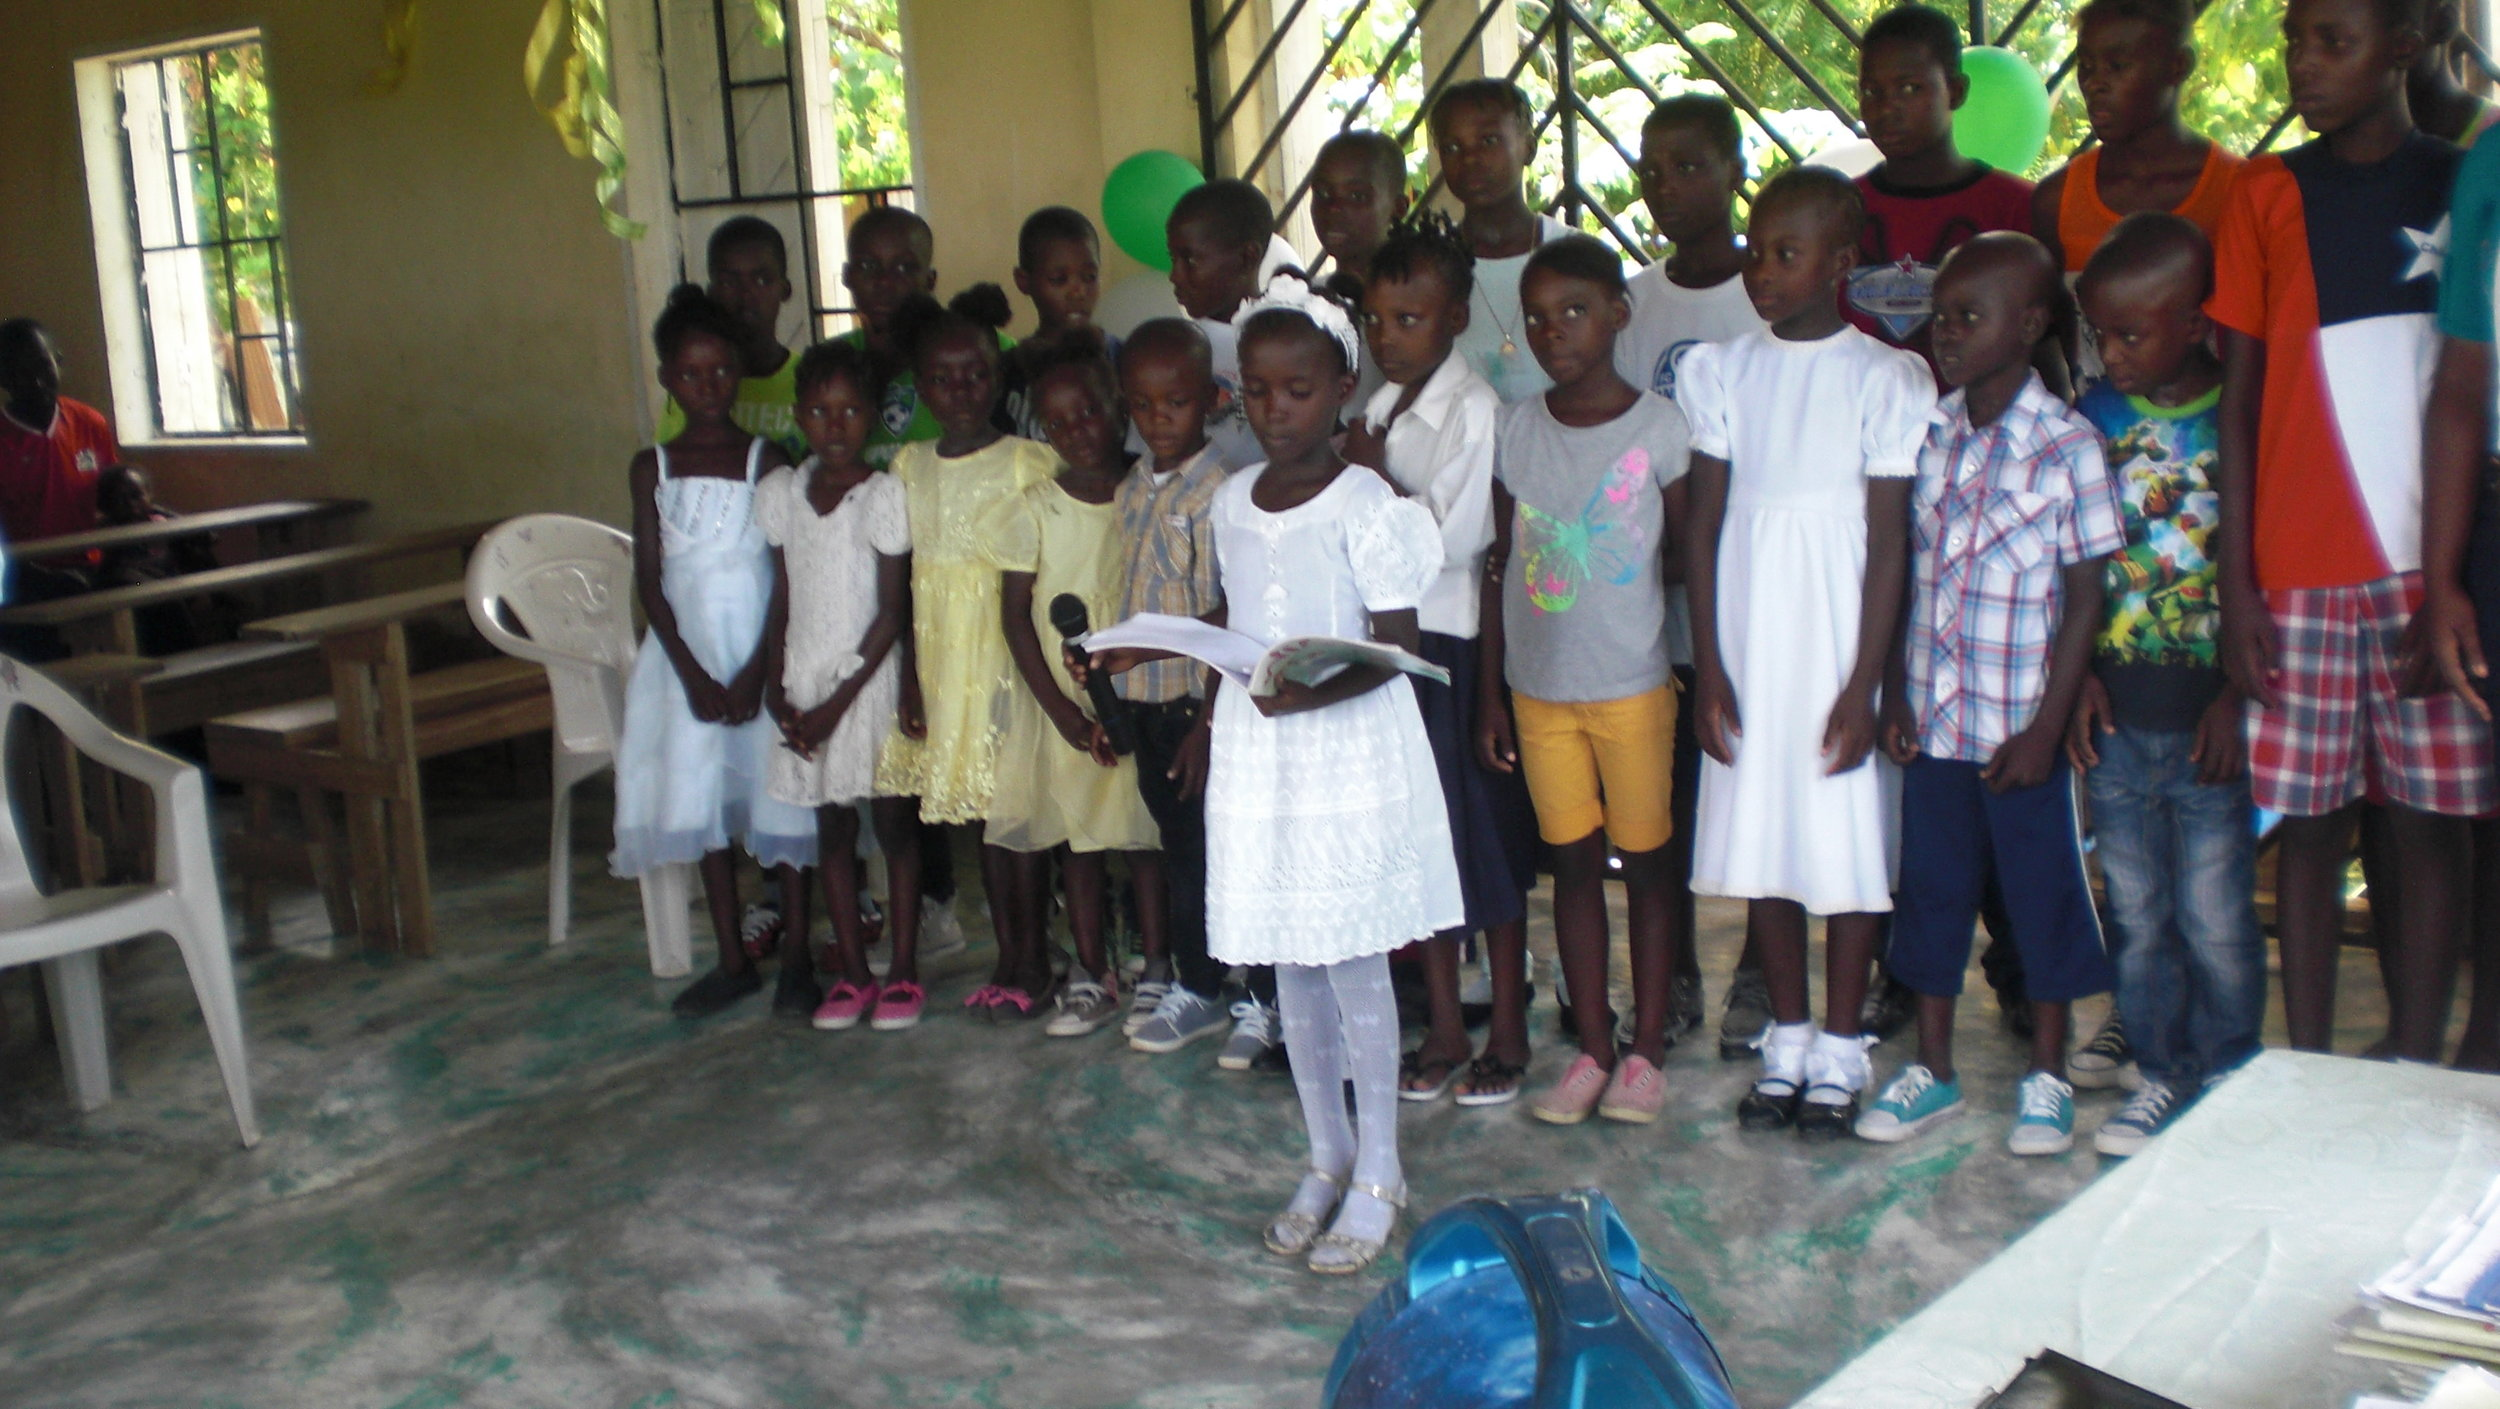 Graduation ceremony for the literacy students in Destra